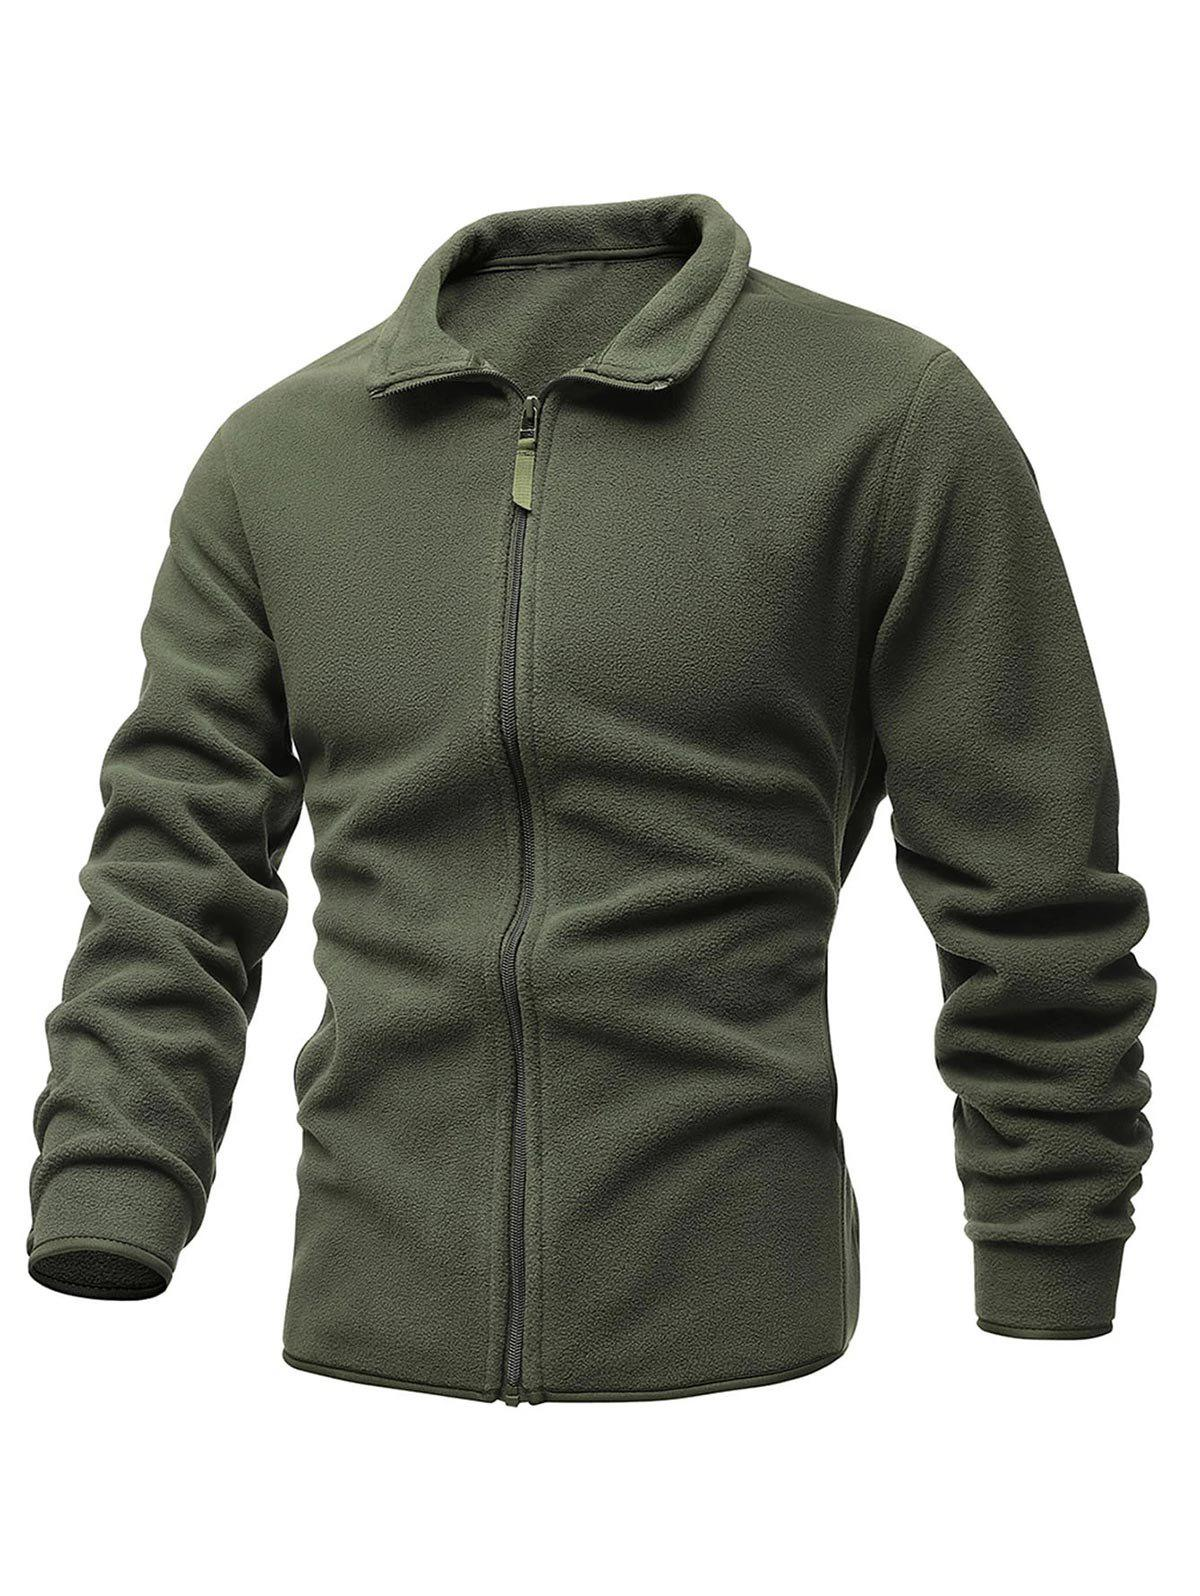 Turndown Collar Zip Up Polar Fleece Jacket - ARMY GREEN L